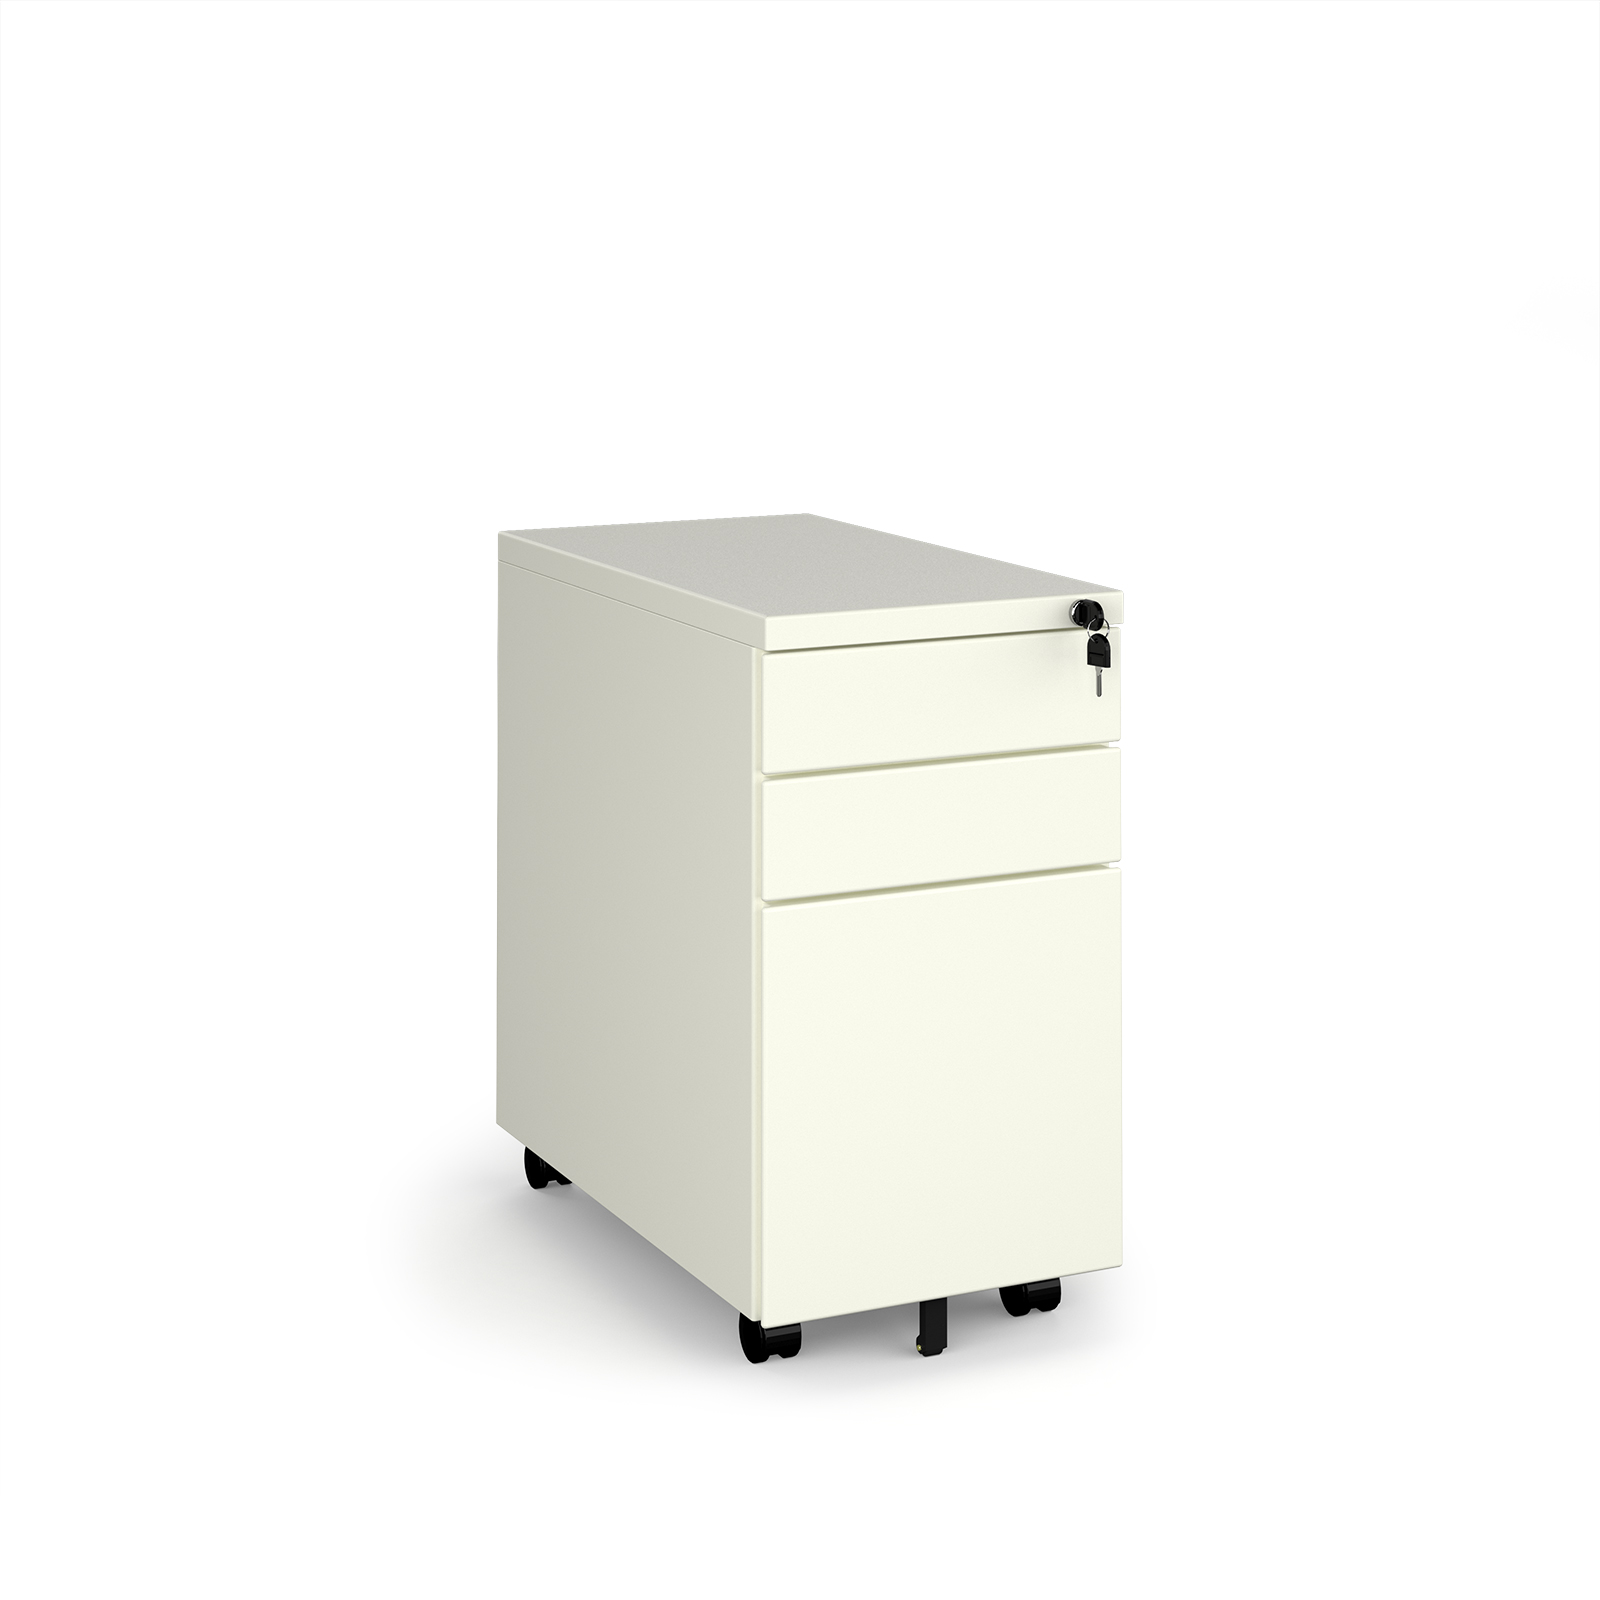 Steel 3 drawer narrow mobile pedestal - white